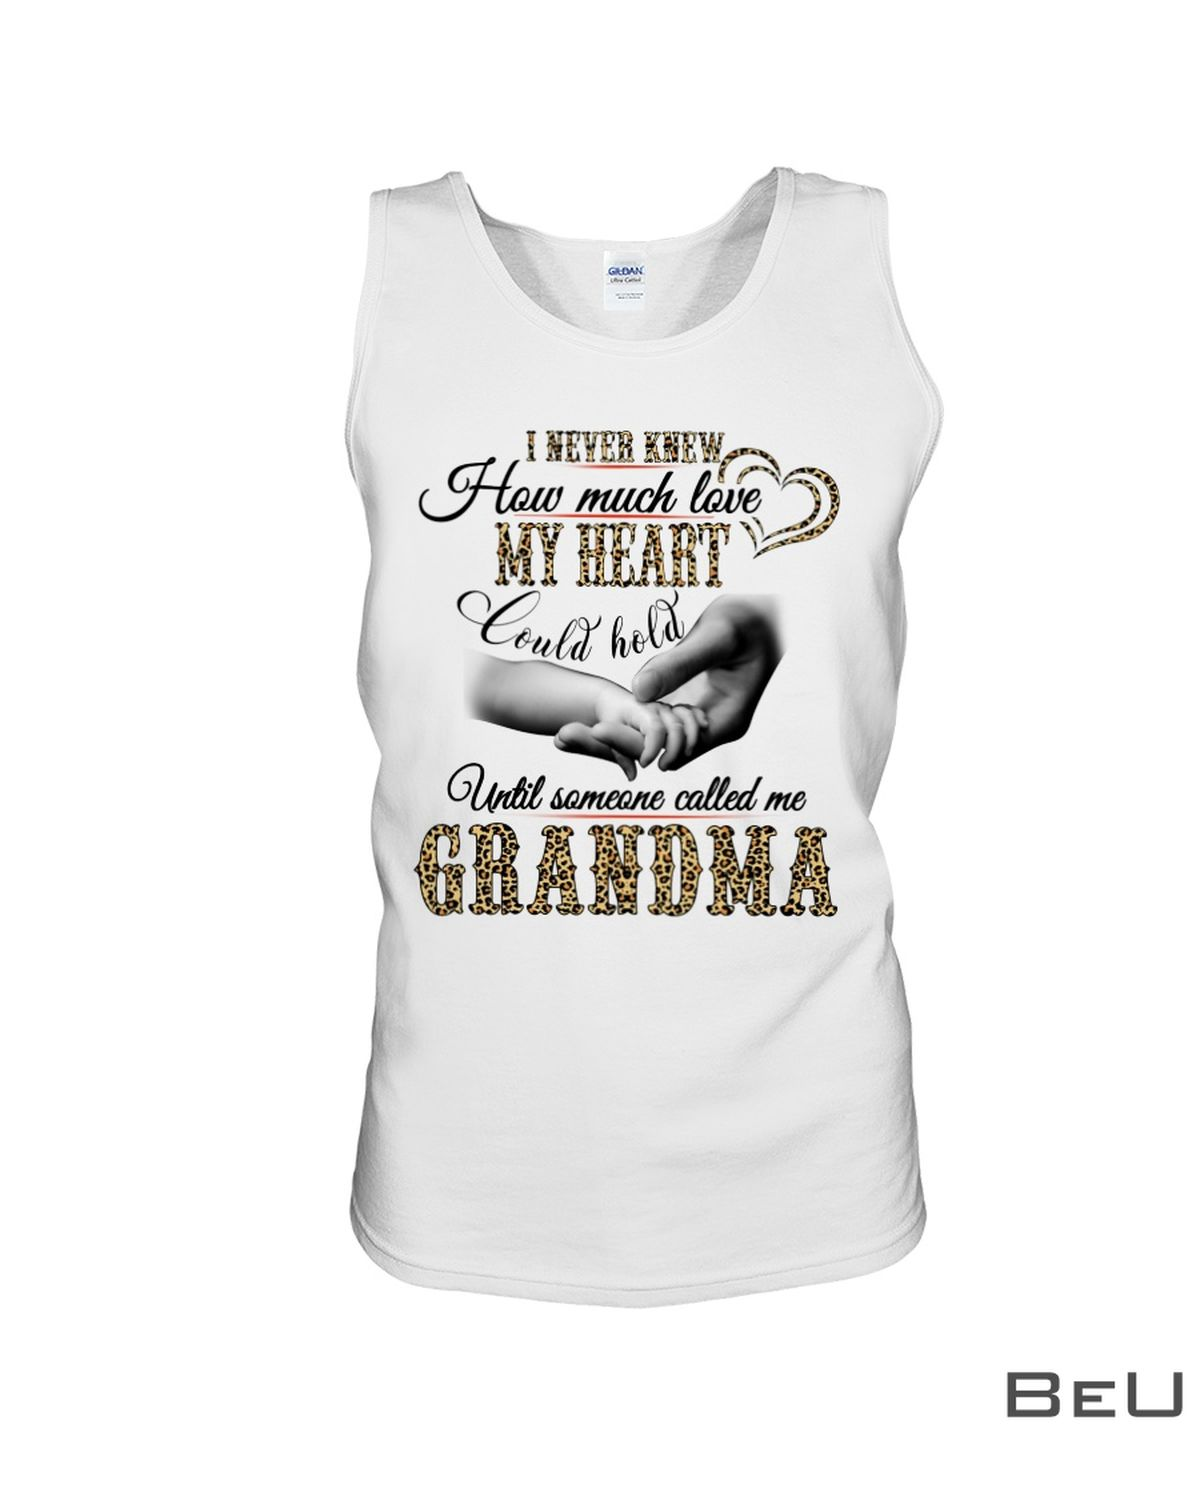 I Never Knew How Much Love My Heart Could Hold Until Someone Called Me Grandma Shirtx